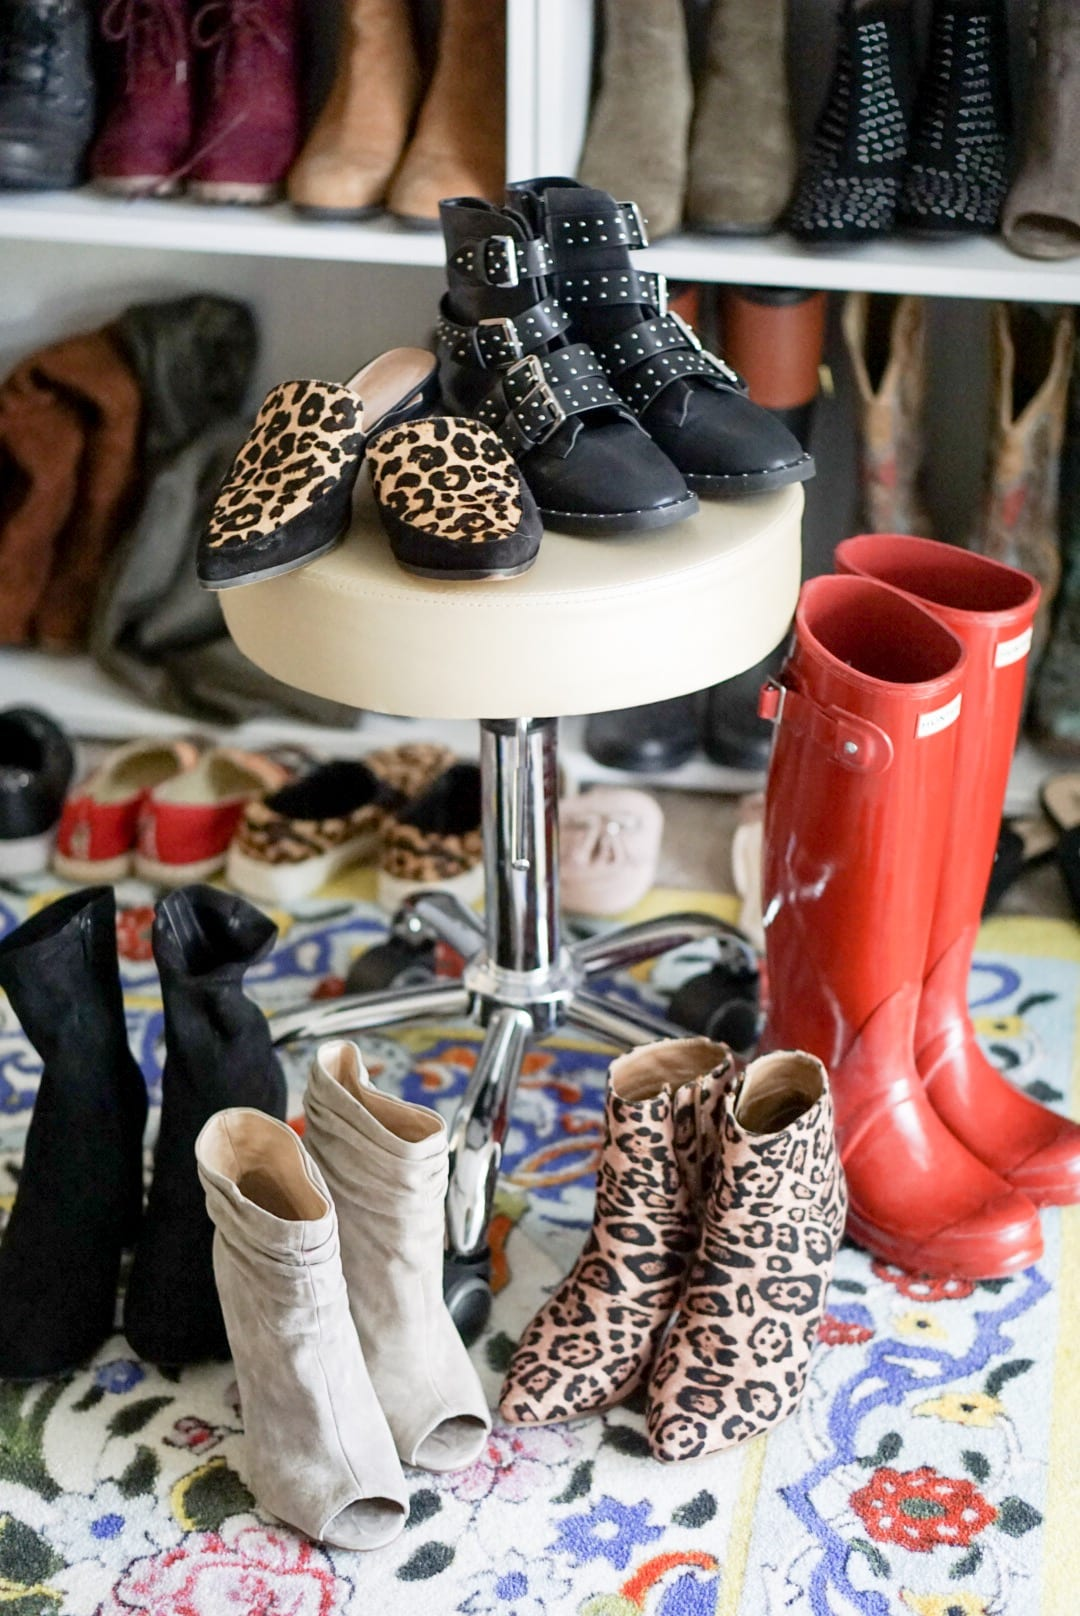 TARGET, SHOPBOB, HUNTER BOOTS, RED HUNTER BOOTS, STUDDED BOOTS, BOOTS FOR FALL, FALL SHOES, PEEP TOE BOOTS, SOCK BOOTIES, LEOPARD BOOTIES, LEOPARD MULES, LEOPARD SLIDES